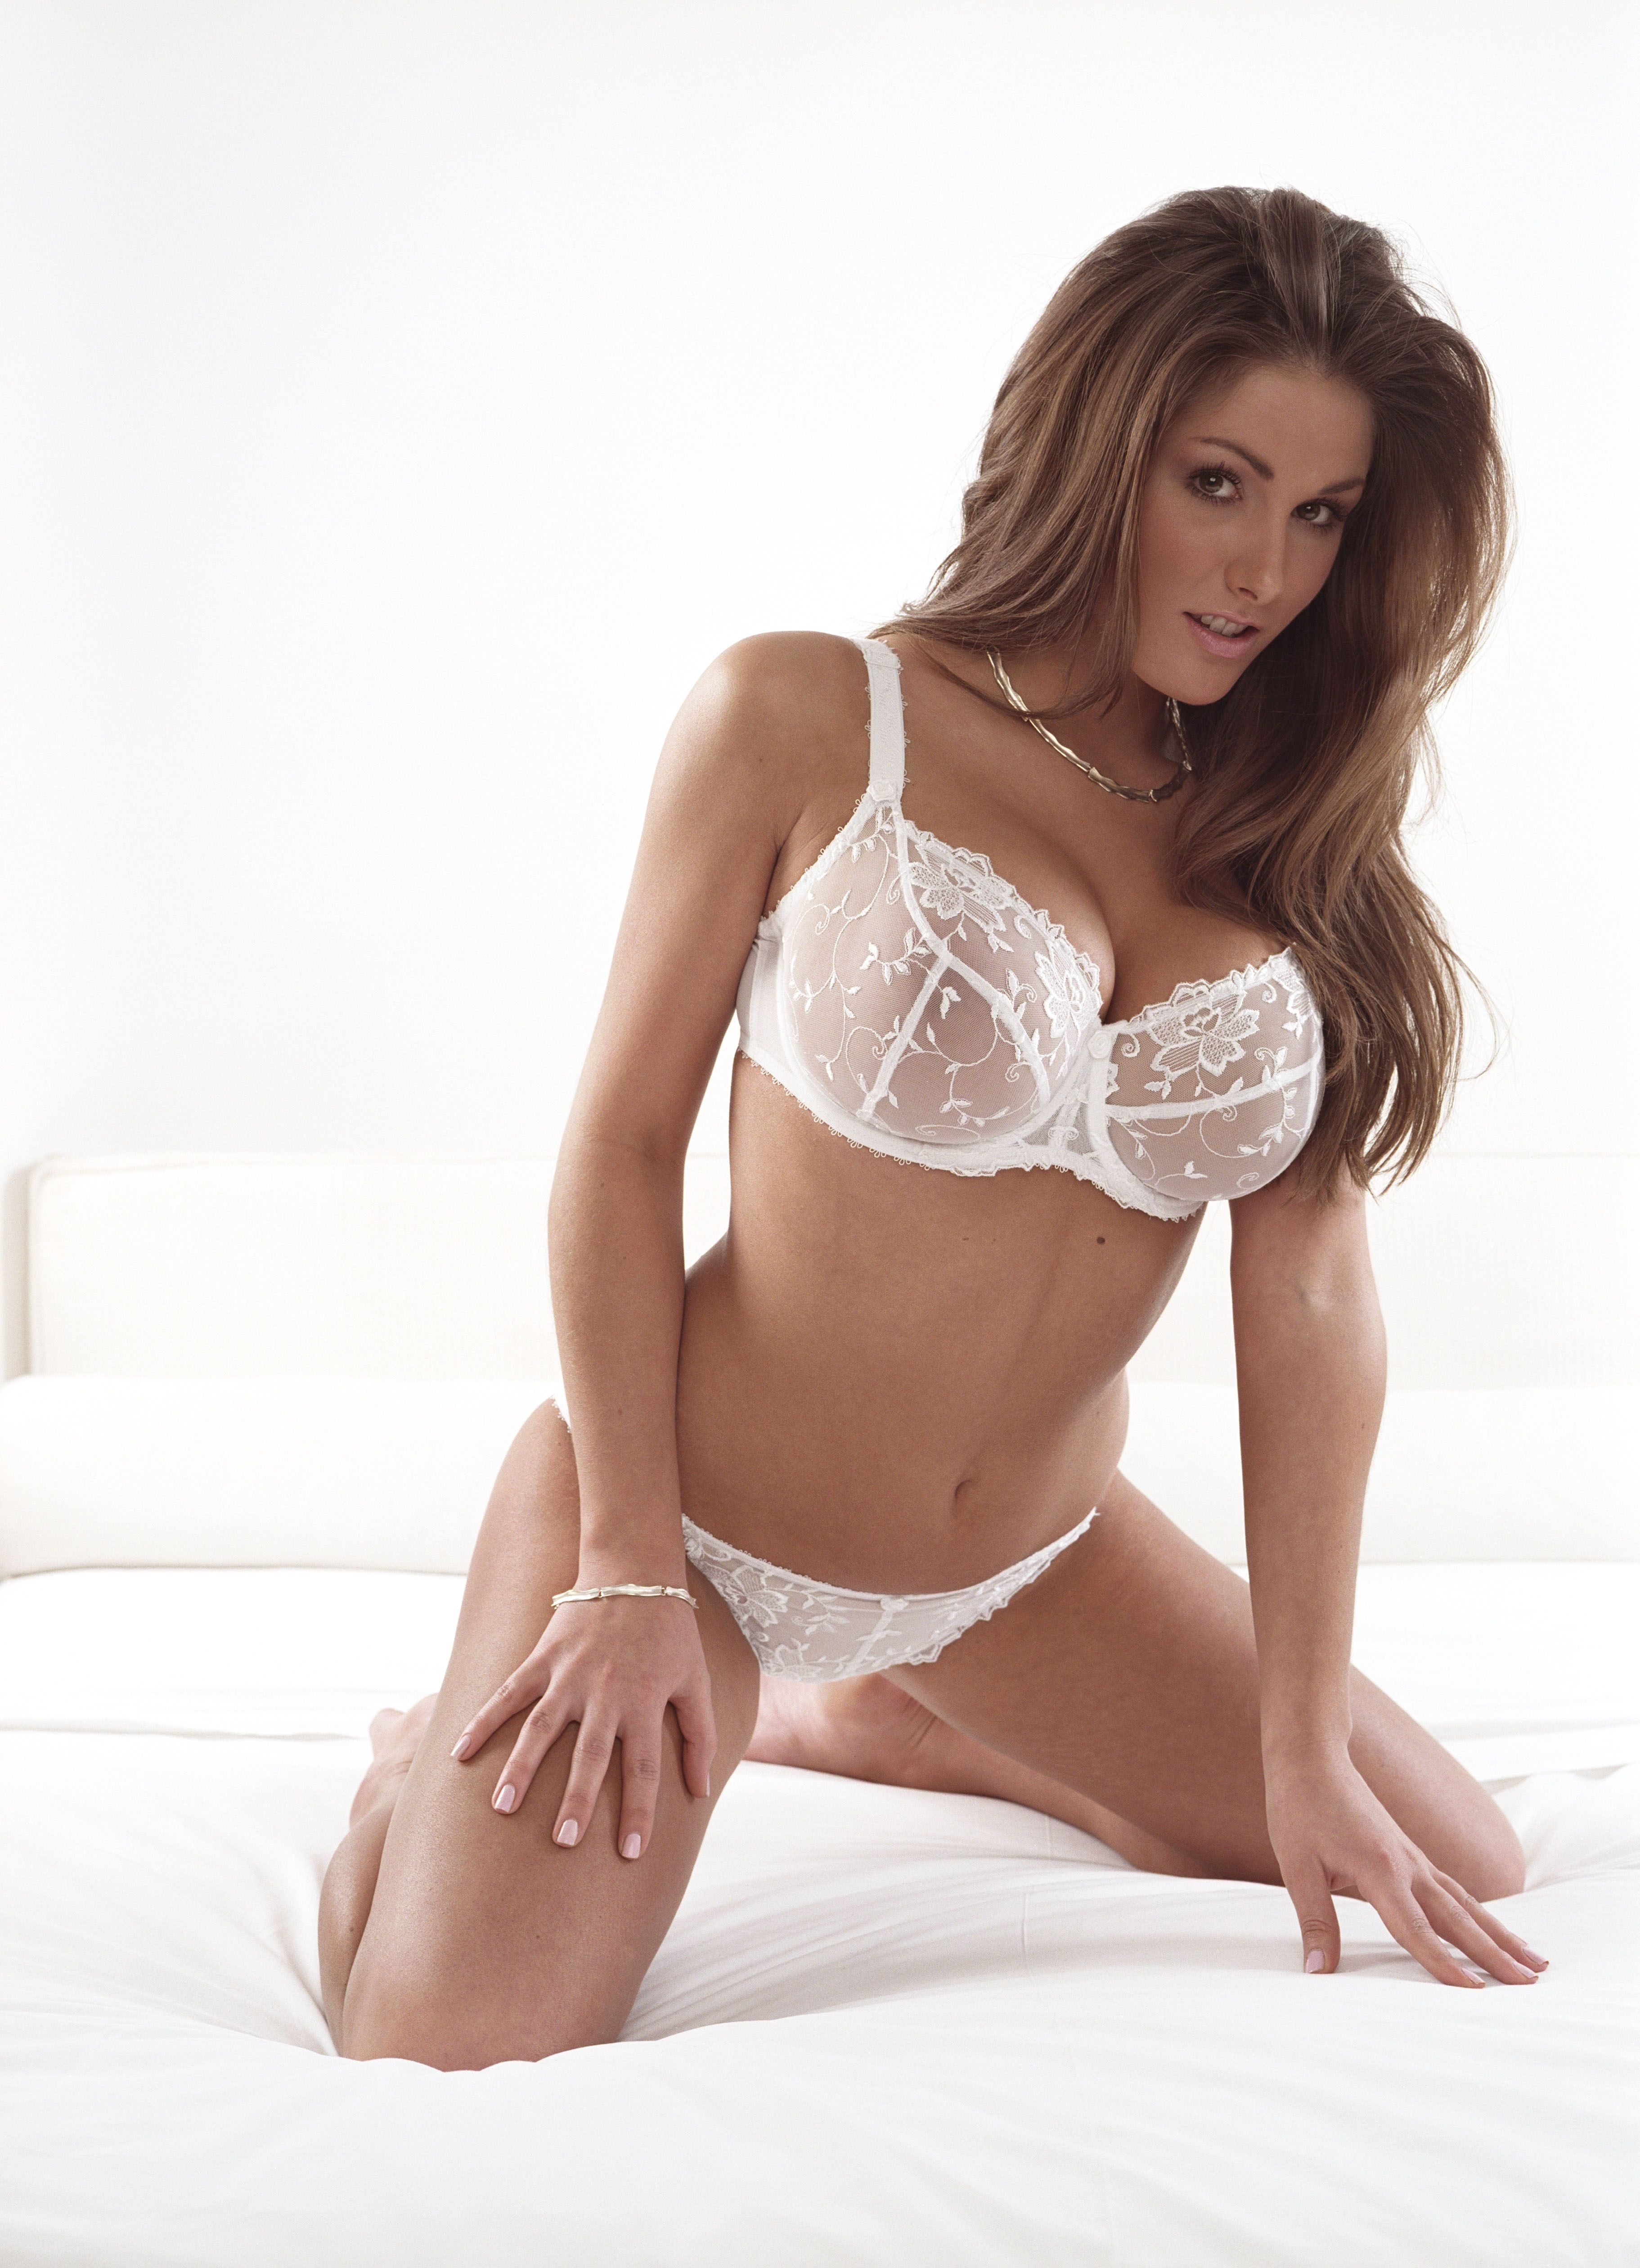 best lucy pinder images on pinterest beautiful women curves 1